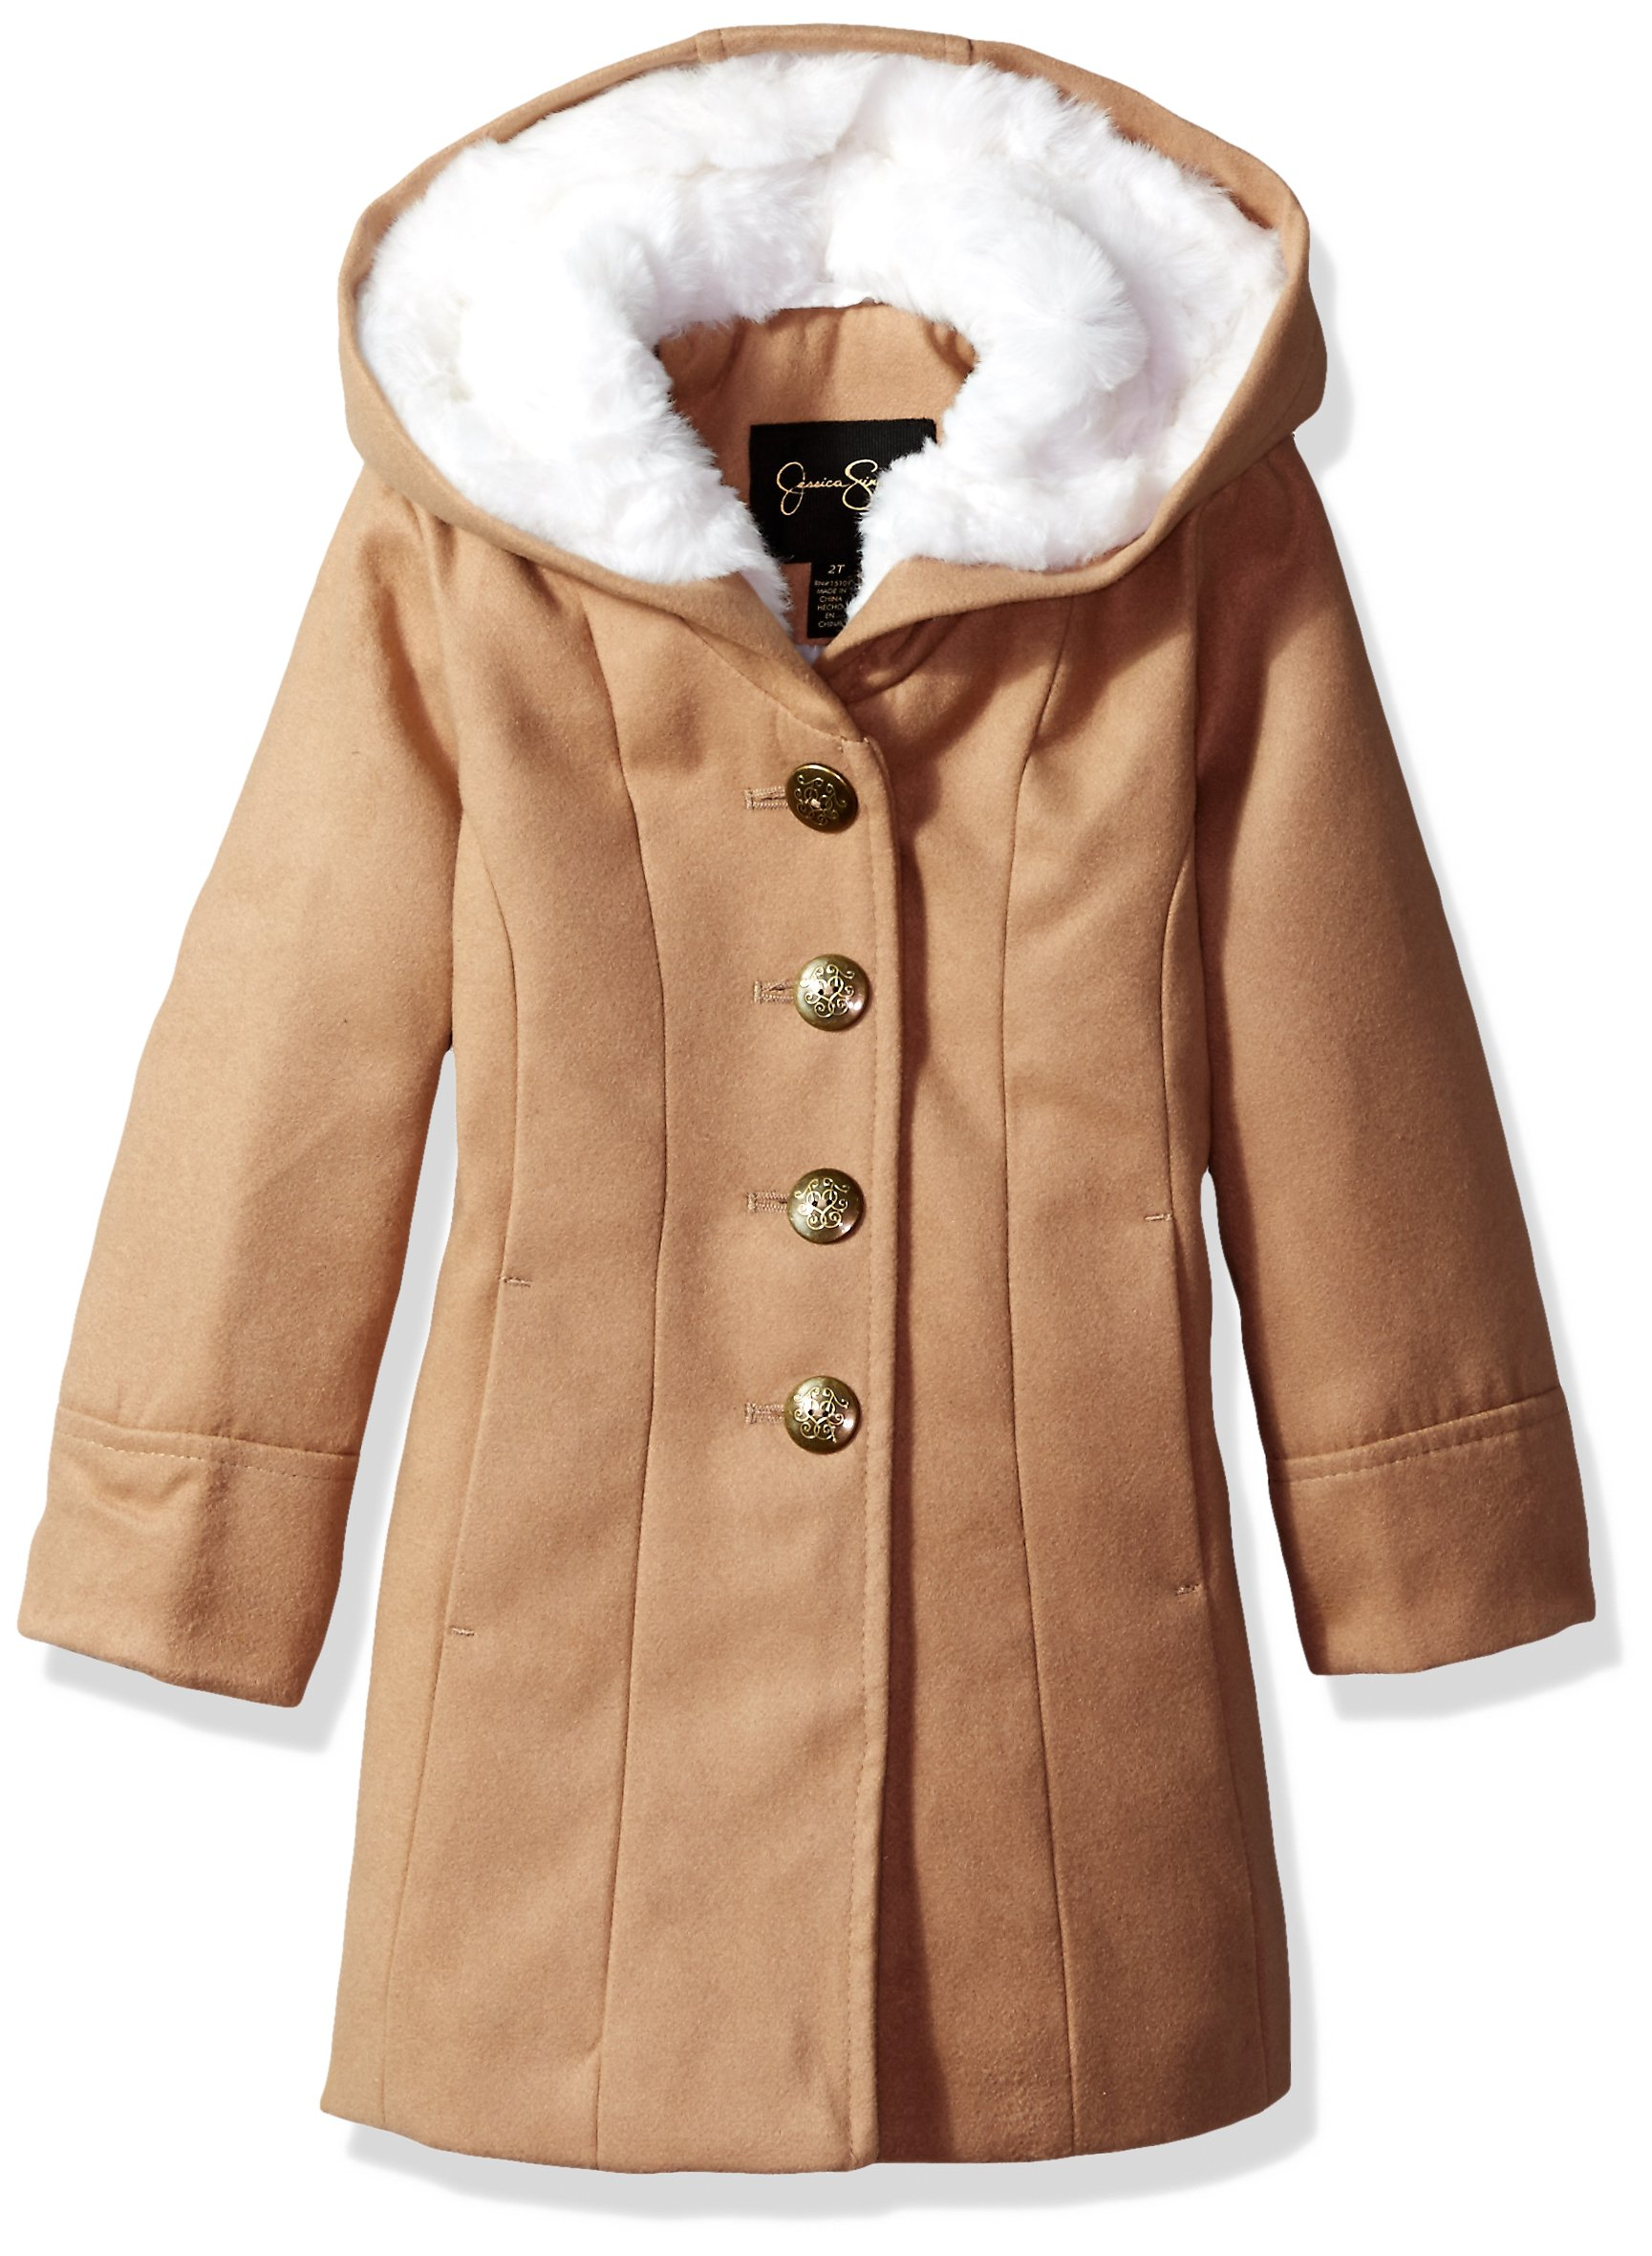 Jessica Simpson Girls' Dress Coat Jacket with Cozy Collar,Camel,6X